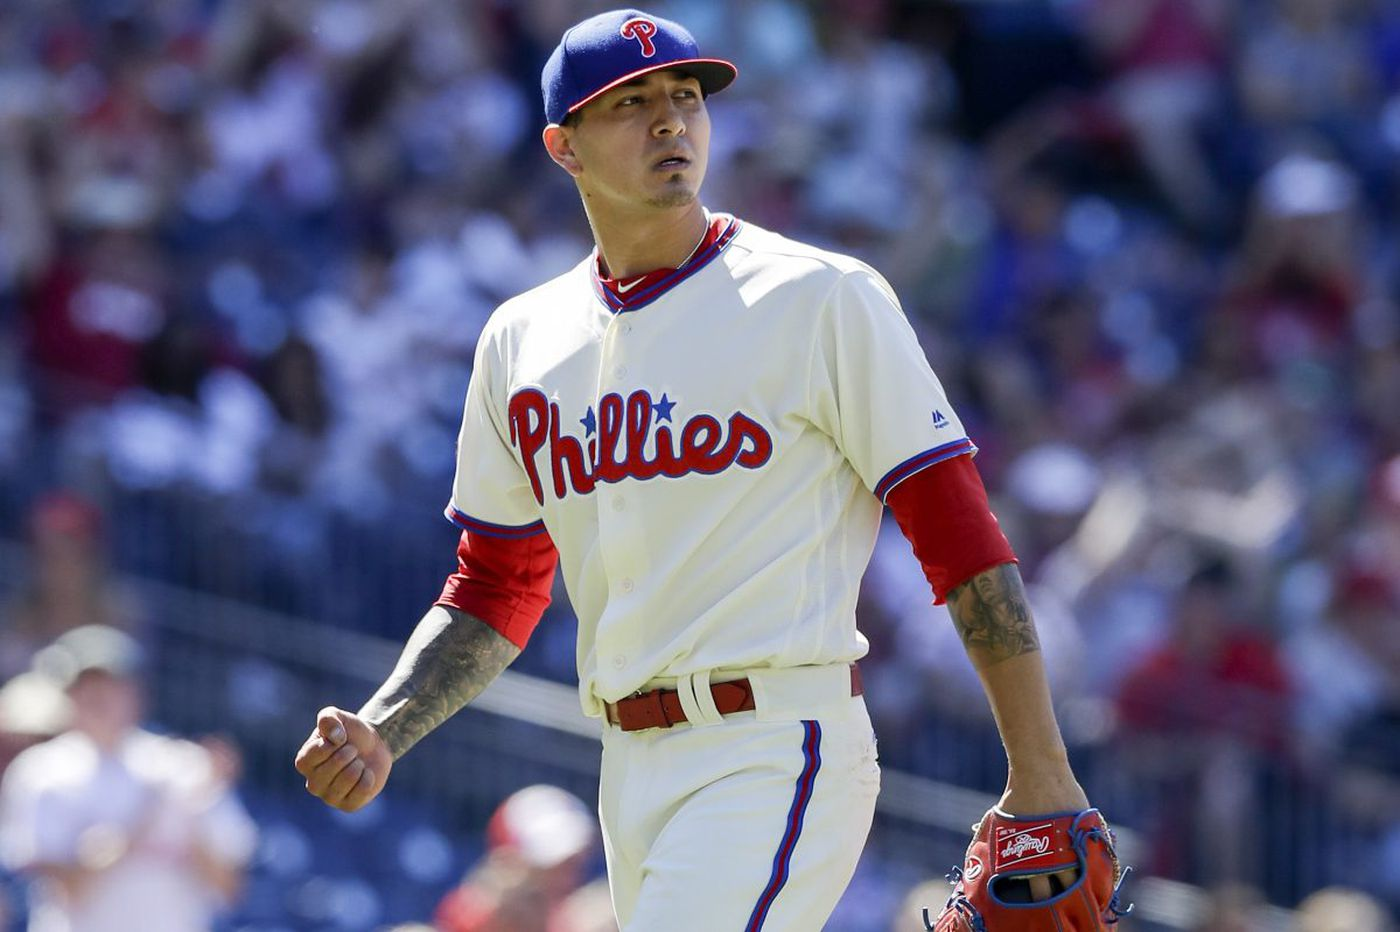 Phillies' Vince Velasquez confident that 'big year' will be this season